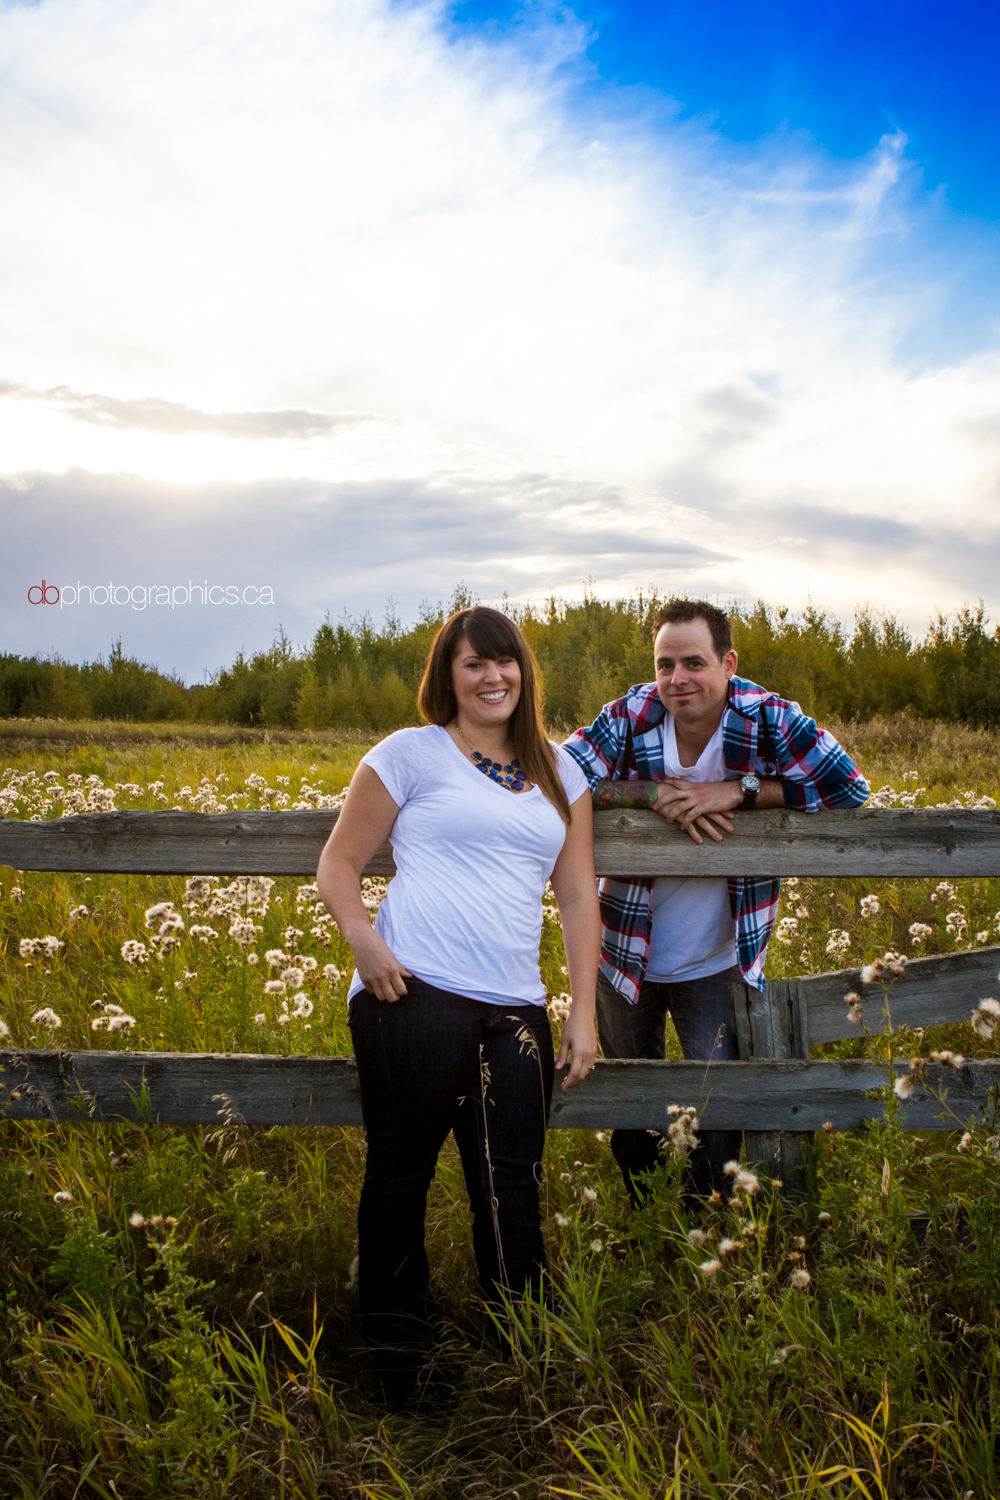 Rob & Alicia Engagement Shoot - 20130922 - 0003.jpg